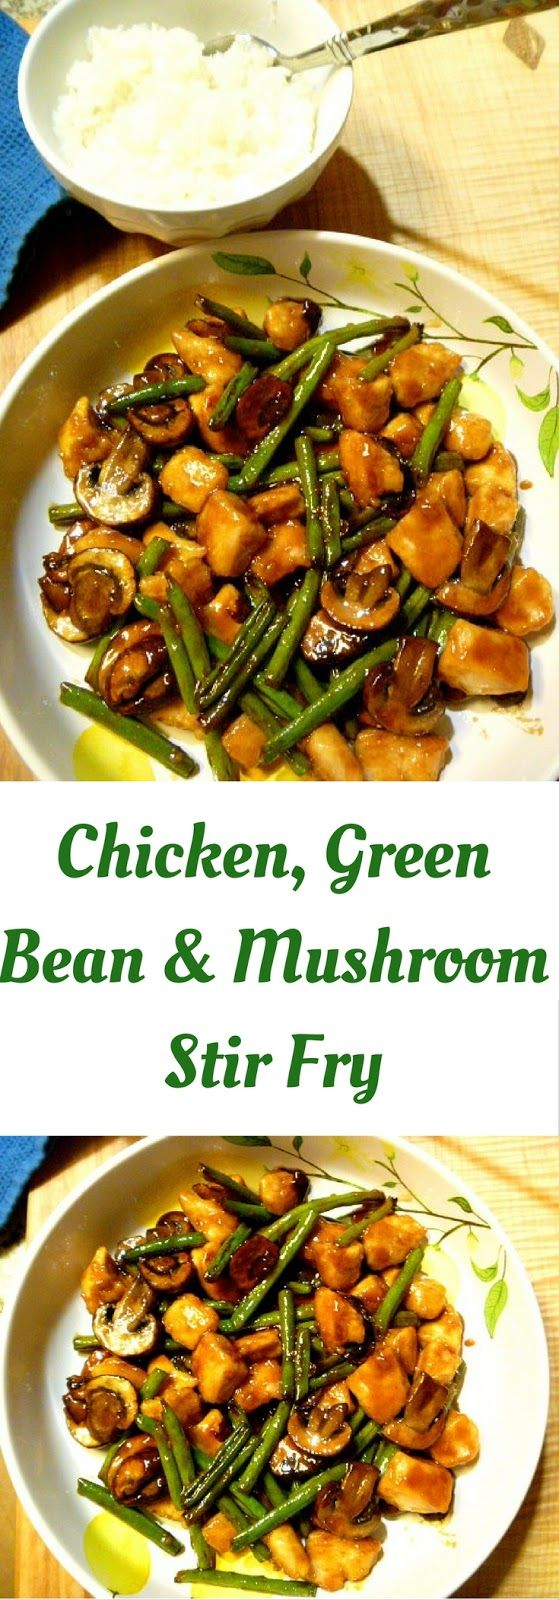 Chicken, Green Bean & Mushroom Stir Fry - a 16 minute meal!!! Forget the take out, this is 1000x BETTER! Slice of Southern